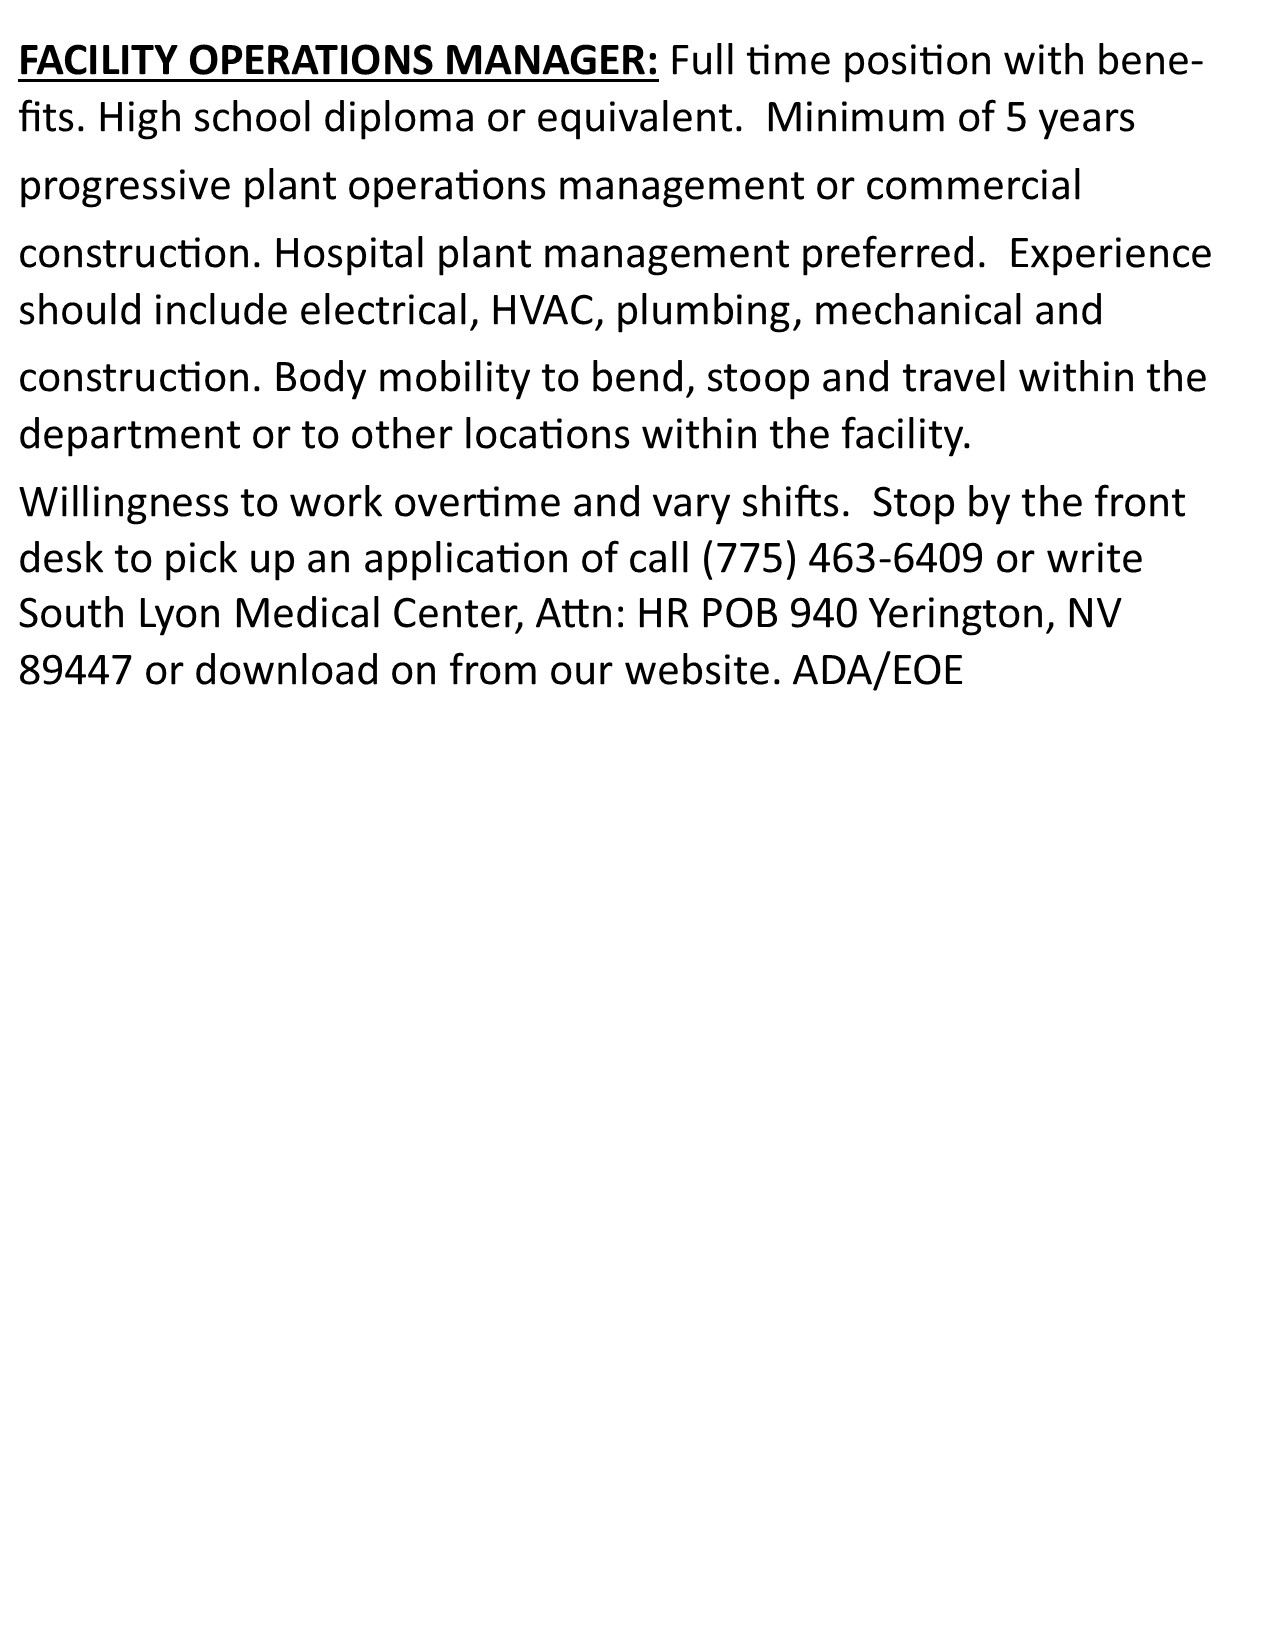 FACILITY OPERATIONS MANAGER JOB